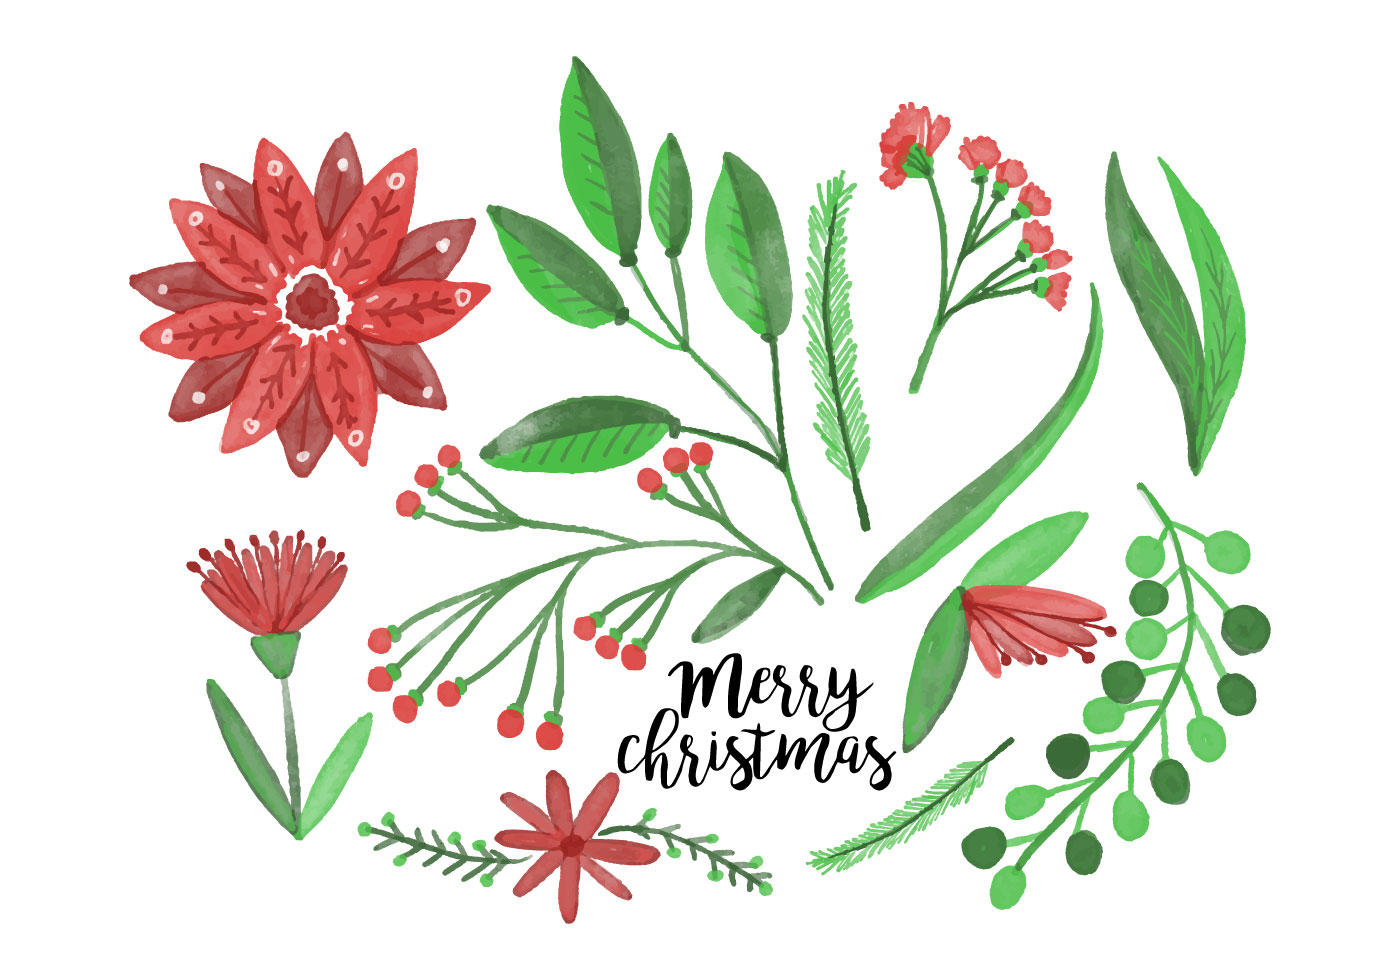 Free Christmas Flowers - Download Free Vectors, Clipart ...